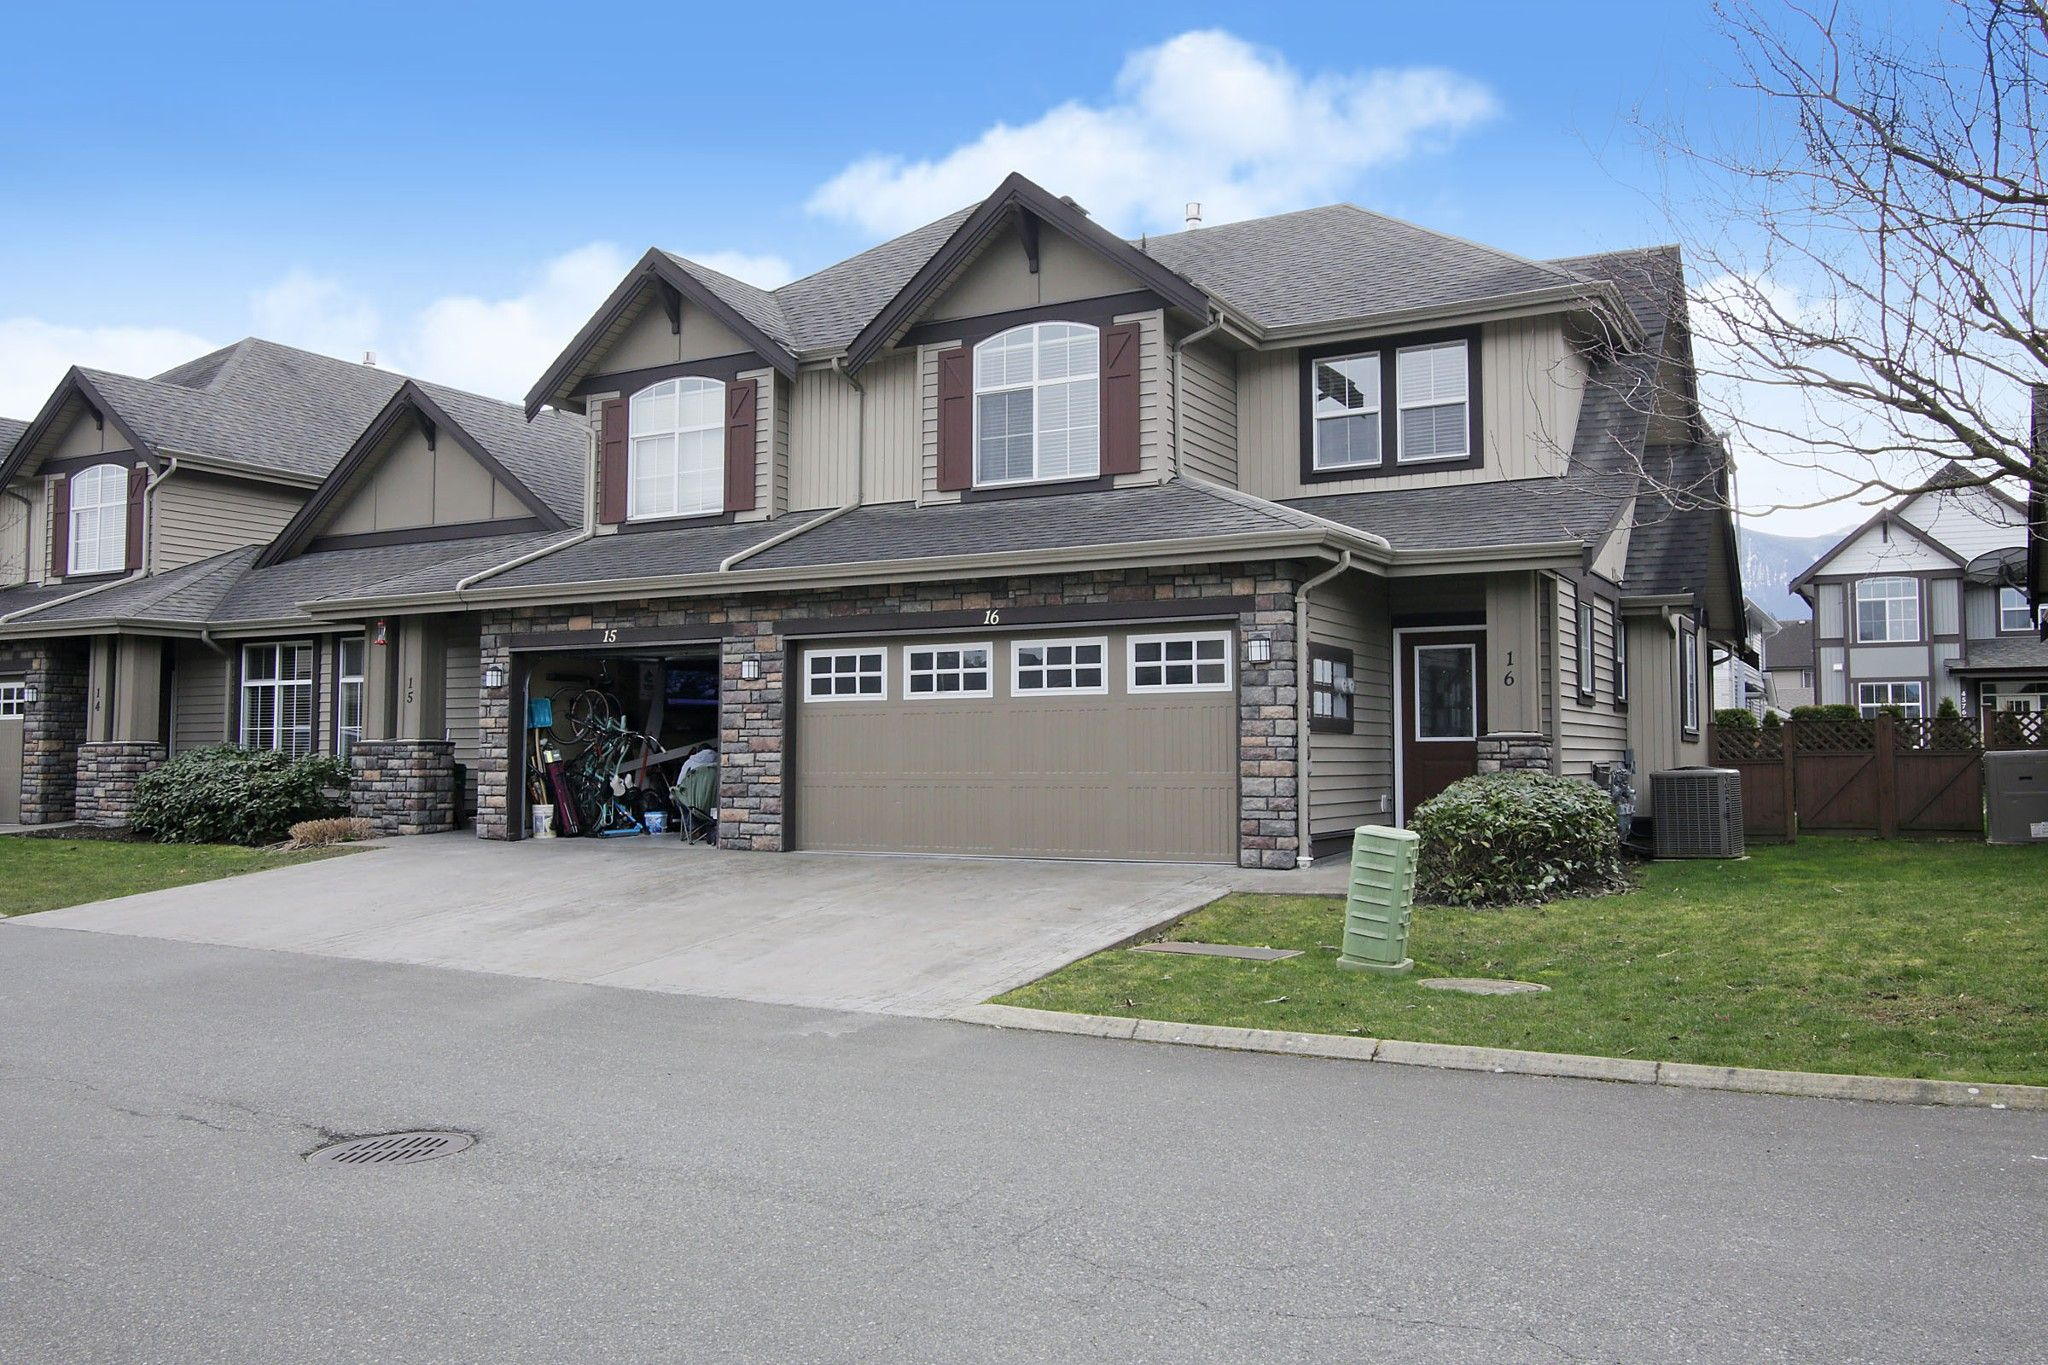 """Main Photo: 16 6577 SOUTHDOWNE Place in Chilliwack: Sardis East Vedder Rd Townhouse for sale in """"Harvest Square"""" (Sardis)  : MLS®# R2546355"""